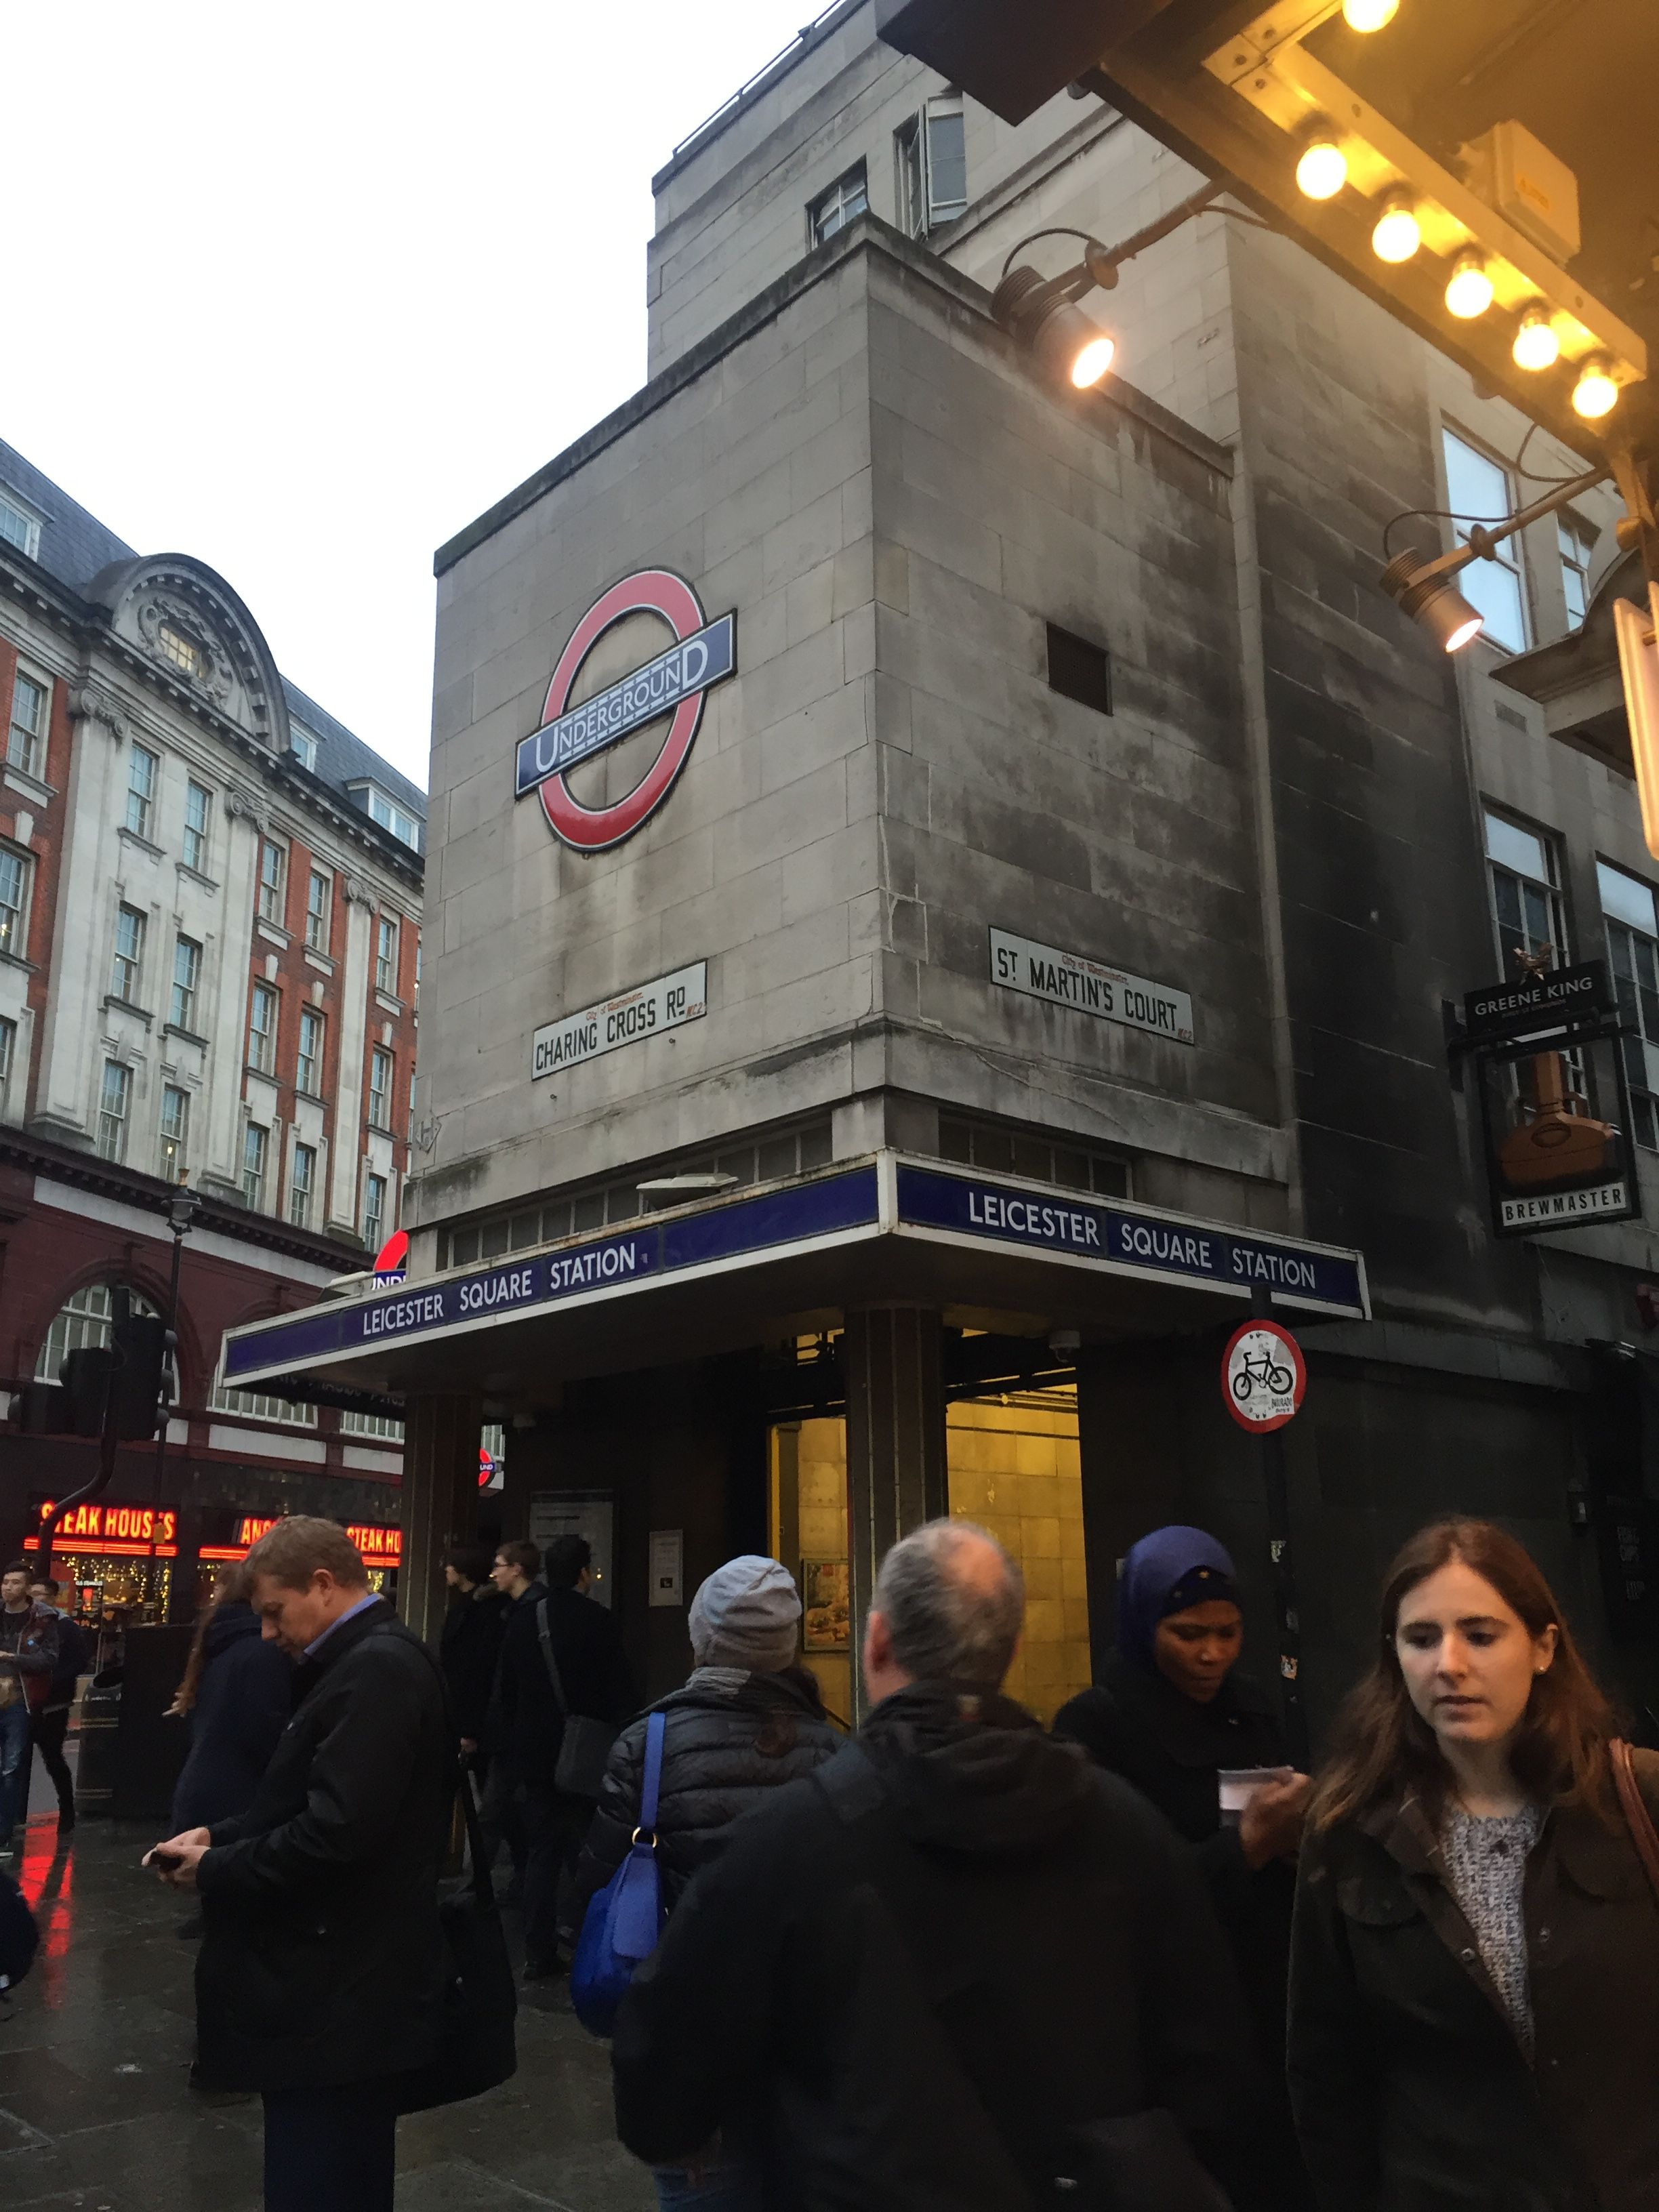 Leicester Square tube station, London